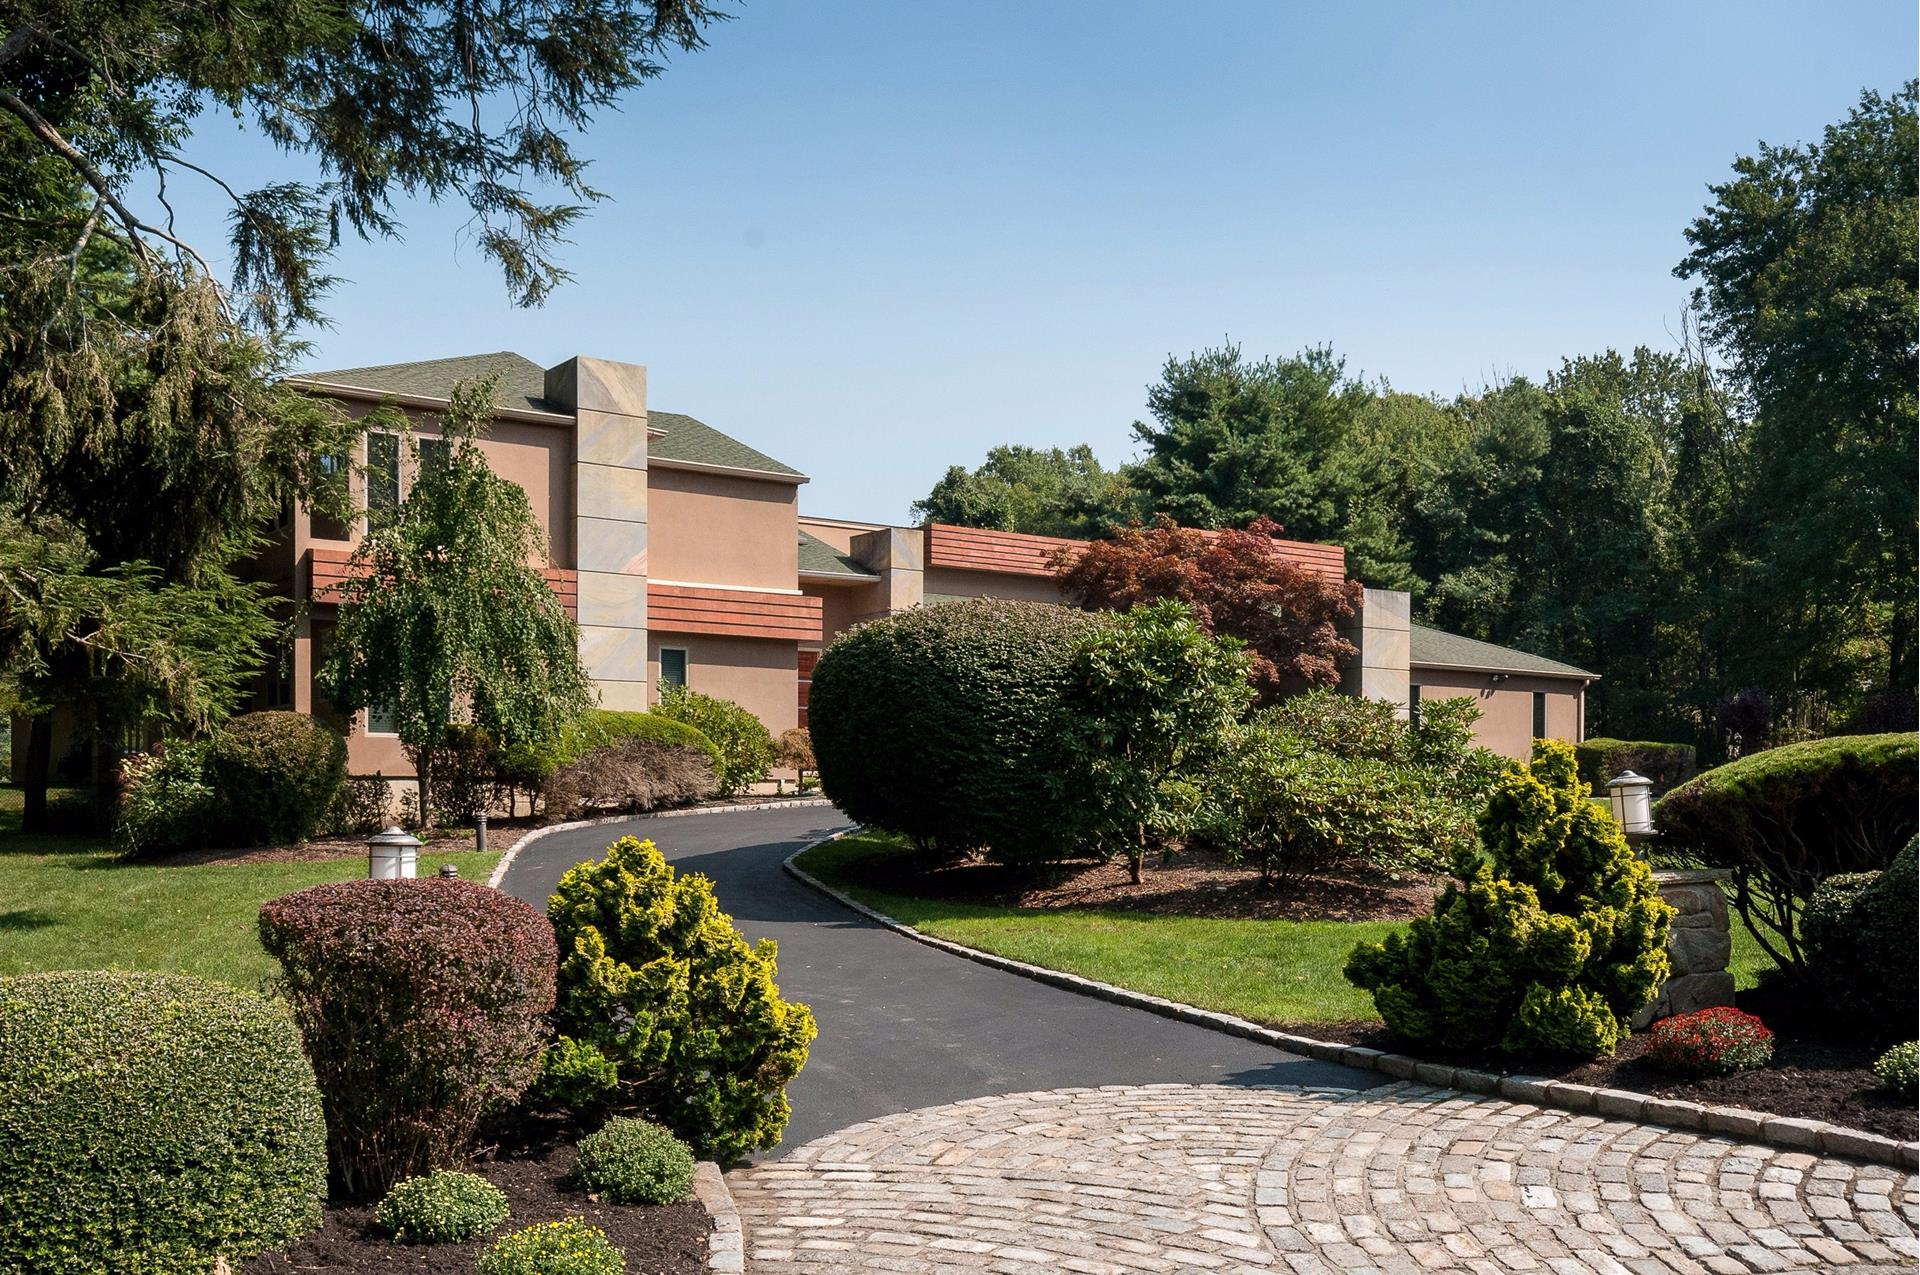 18 Ursuline Ct - Oyster Bay Cove, New York